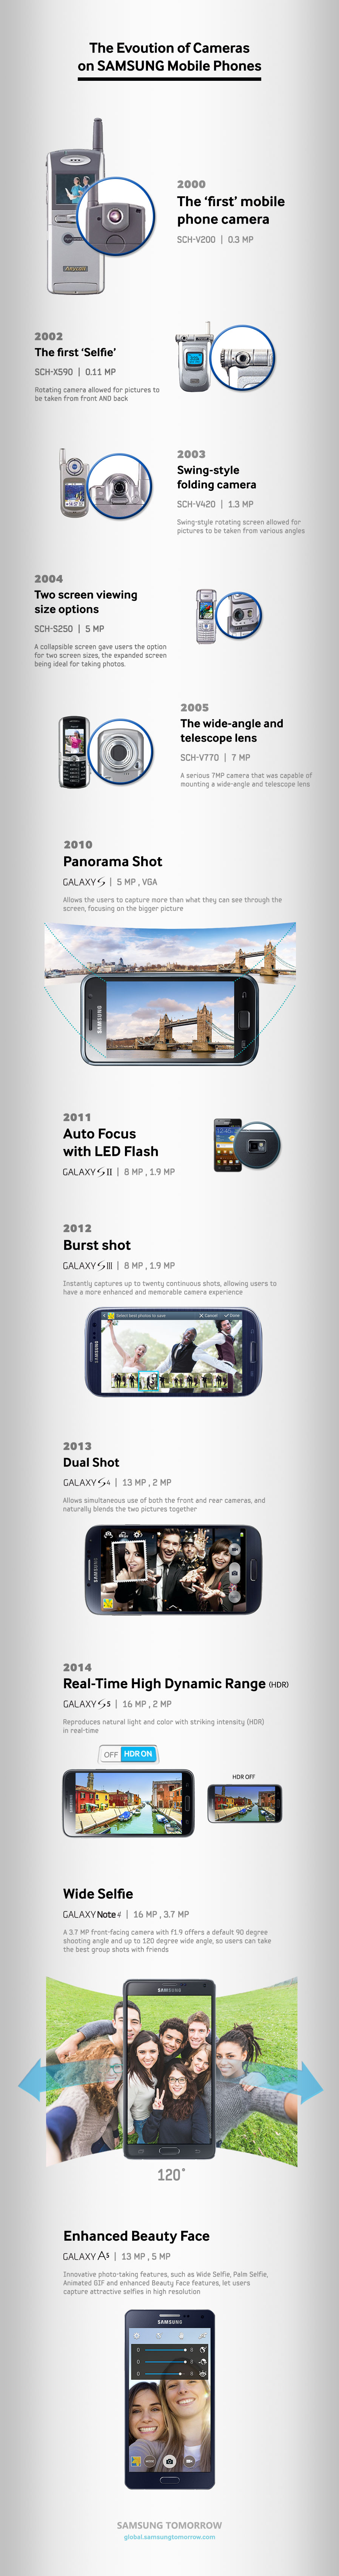 samsung_mobile-camera_infographic